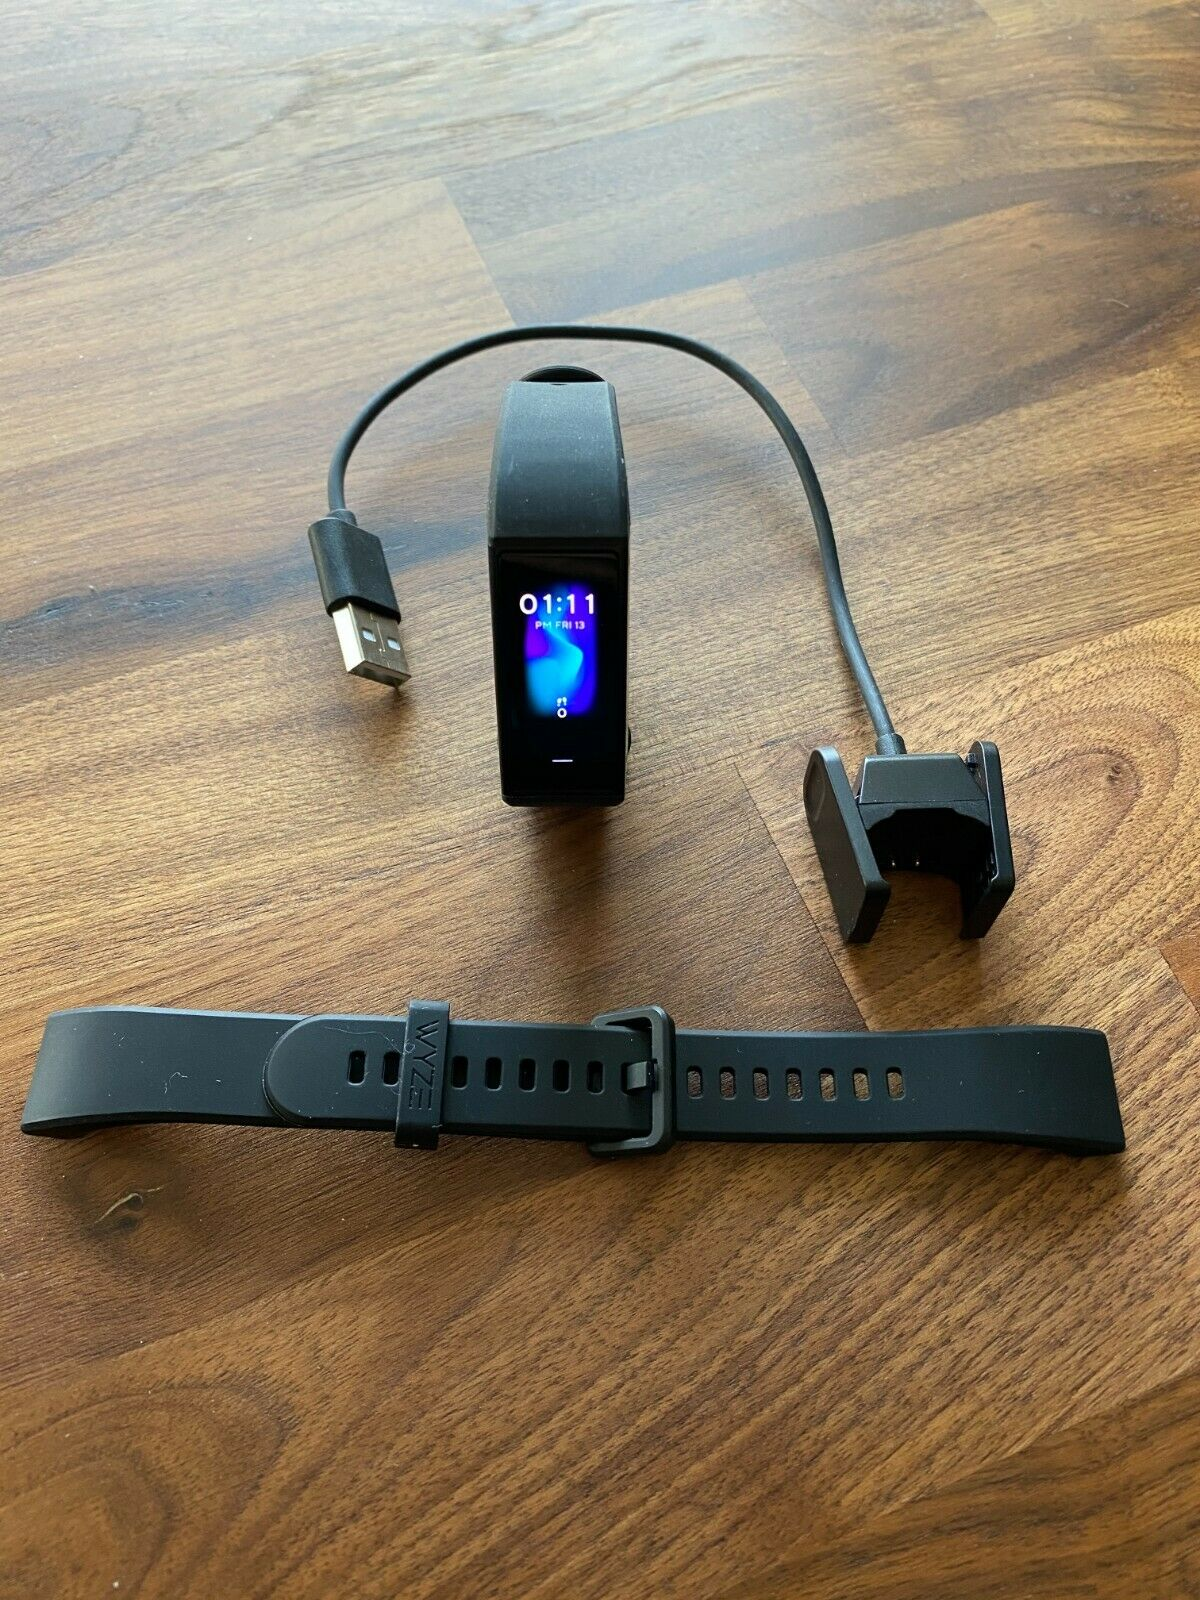 Wyze Band Activity Tracker Smart Watch With Alexa And Extra Watch Style Band - $13.50